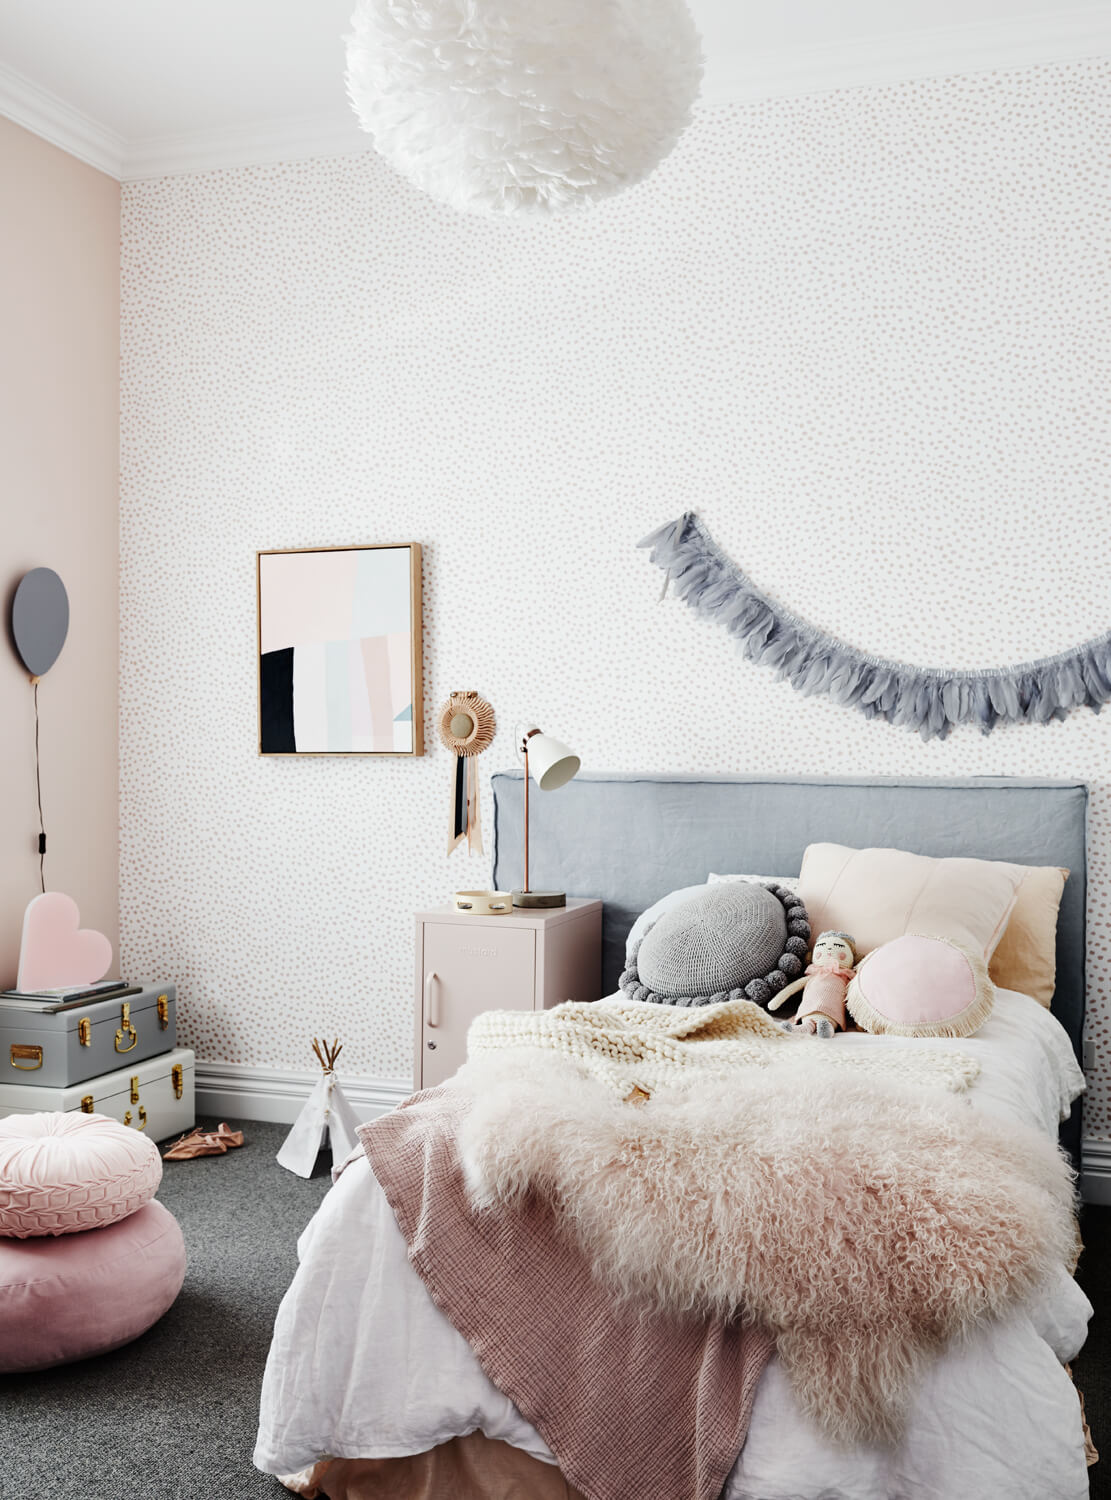 Paul & Paula: Two contemporary children's rooms with flair